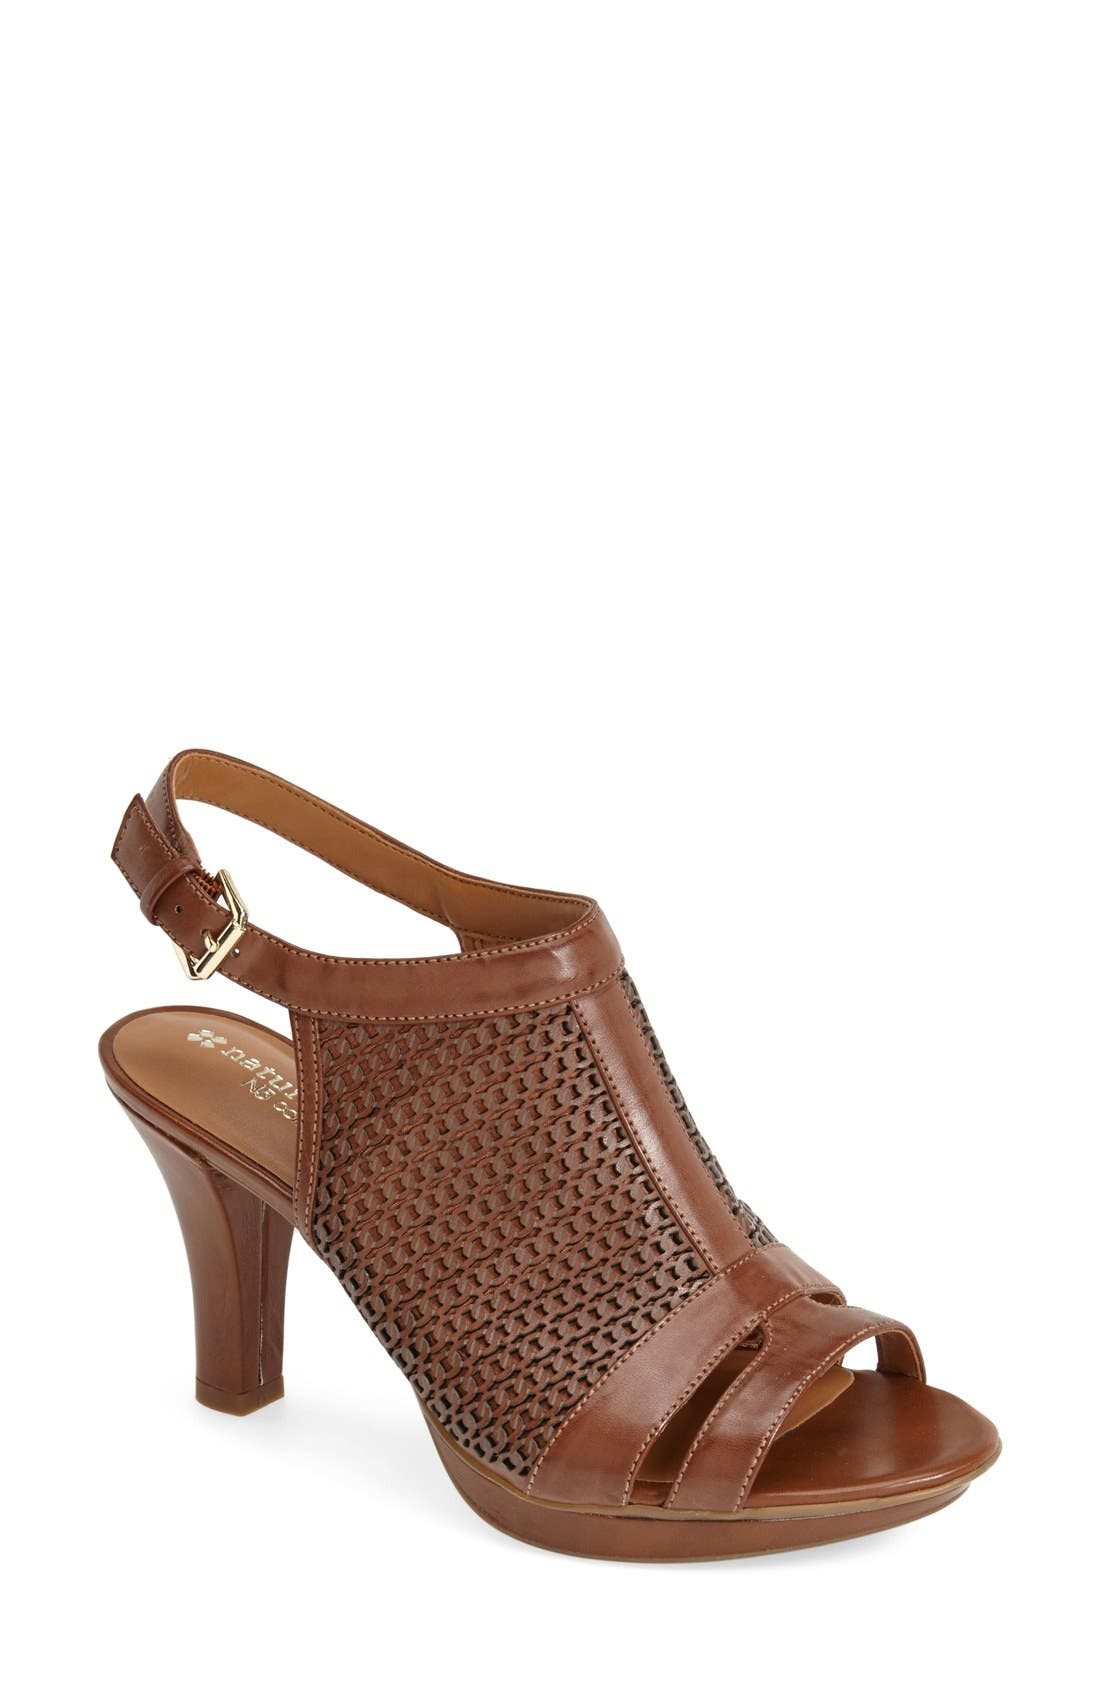 Alternate Image 1 Selected - Naturalizer 'Dania' Ankle Strap Sandal (Women)